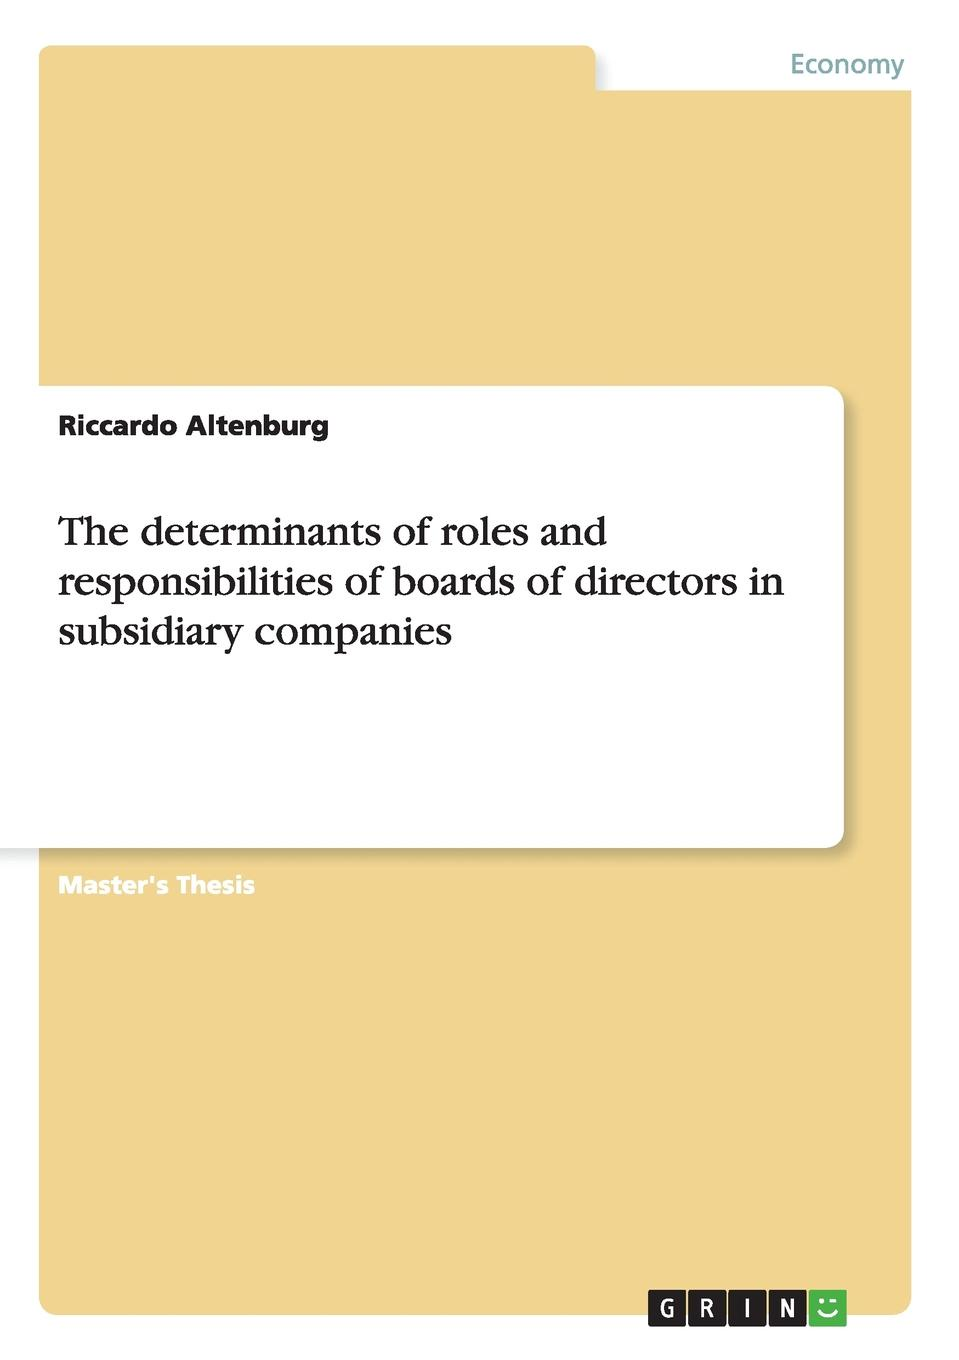 Riccardo Altenburg The determinants of roles and responsibilities of boards of directors in subsidiary companies